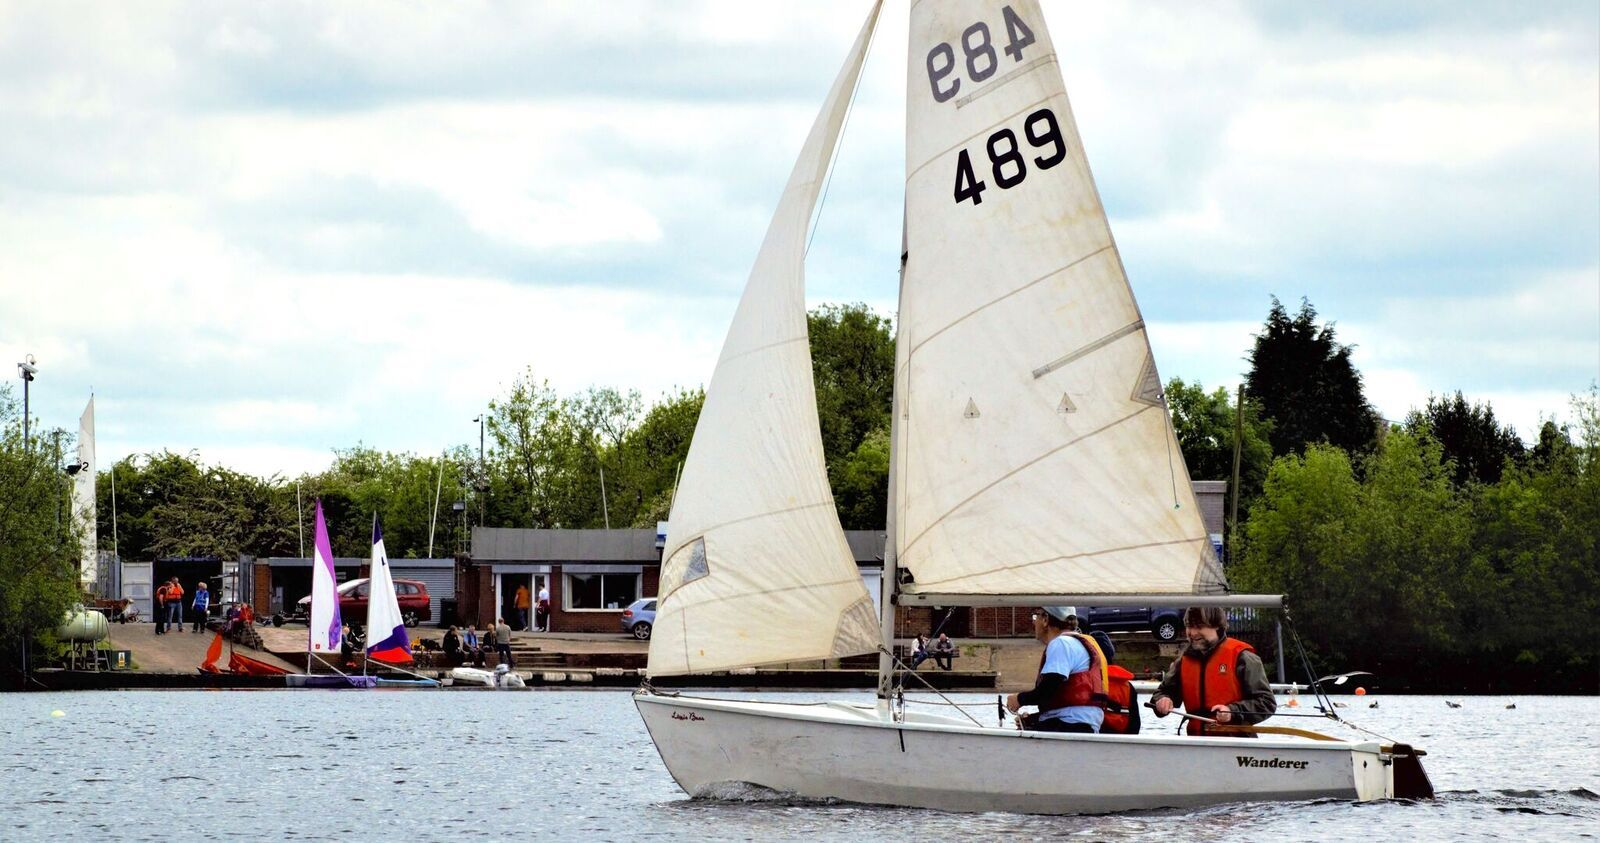 Sail for free at Dudley Sailing Club this weekend. Picture by Thomas Billingham.